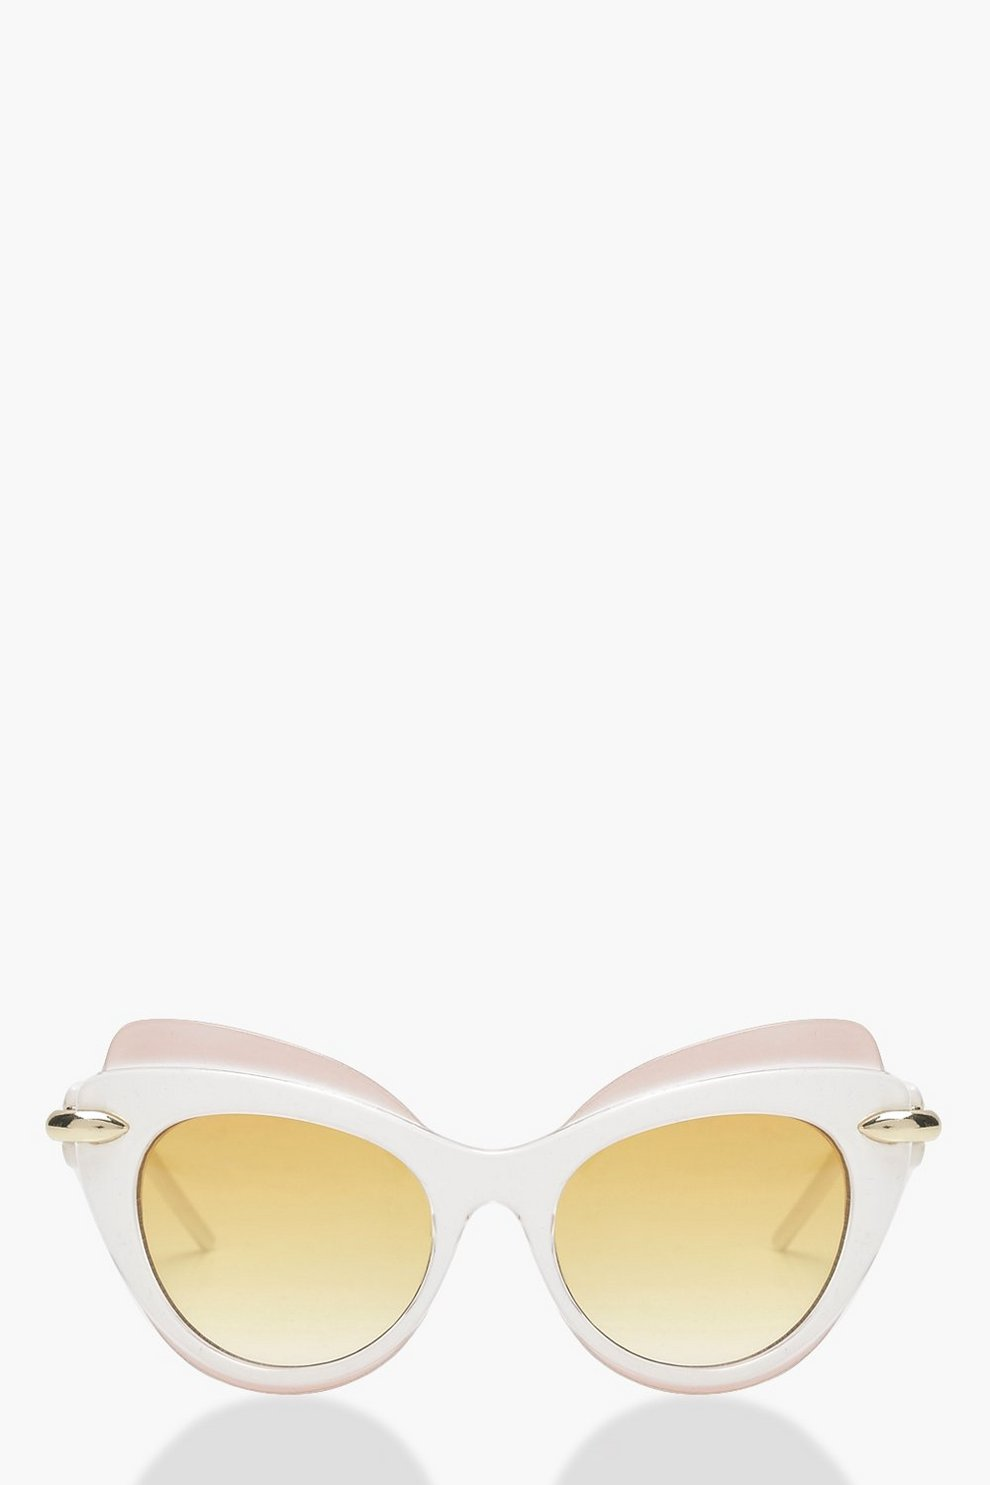 Heather Contrast Top Bar Cat Eye Sunglasses by Boohoo